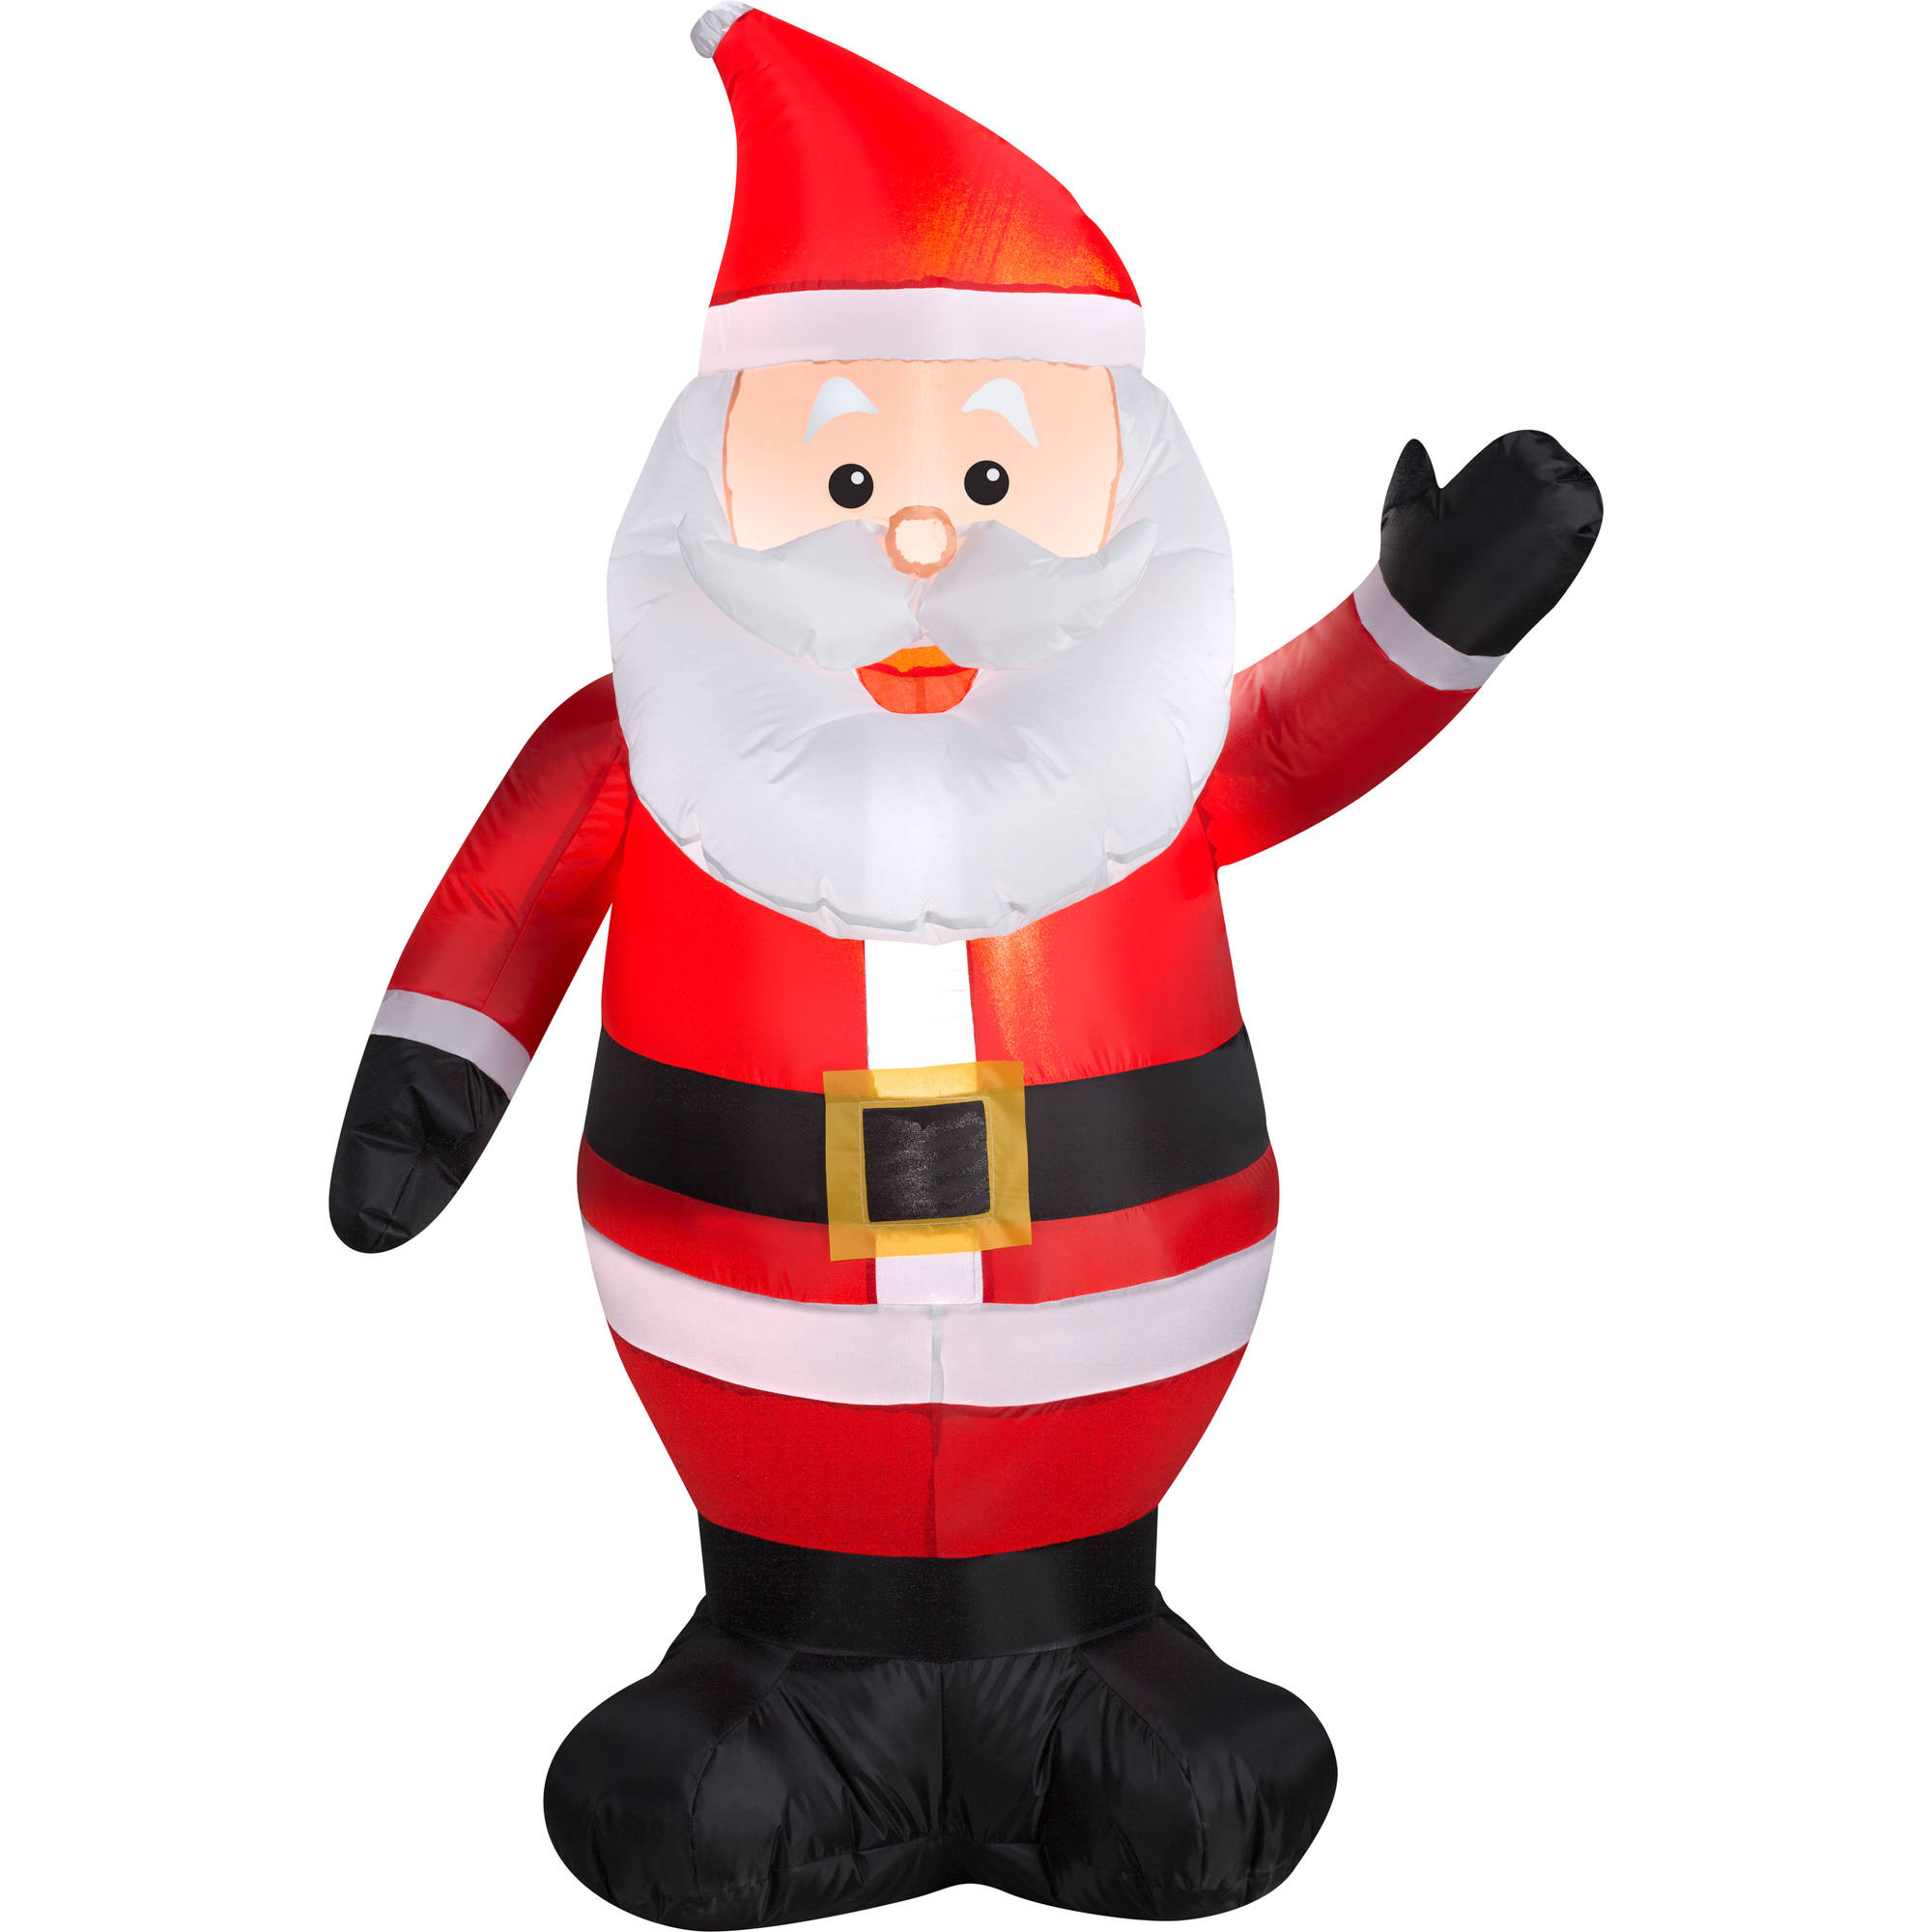 Gemmy Airblown Inflatable Waving Santa Christmas Inflatable, 4